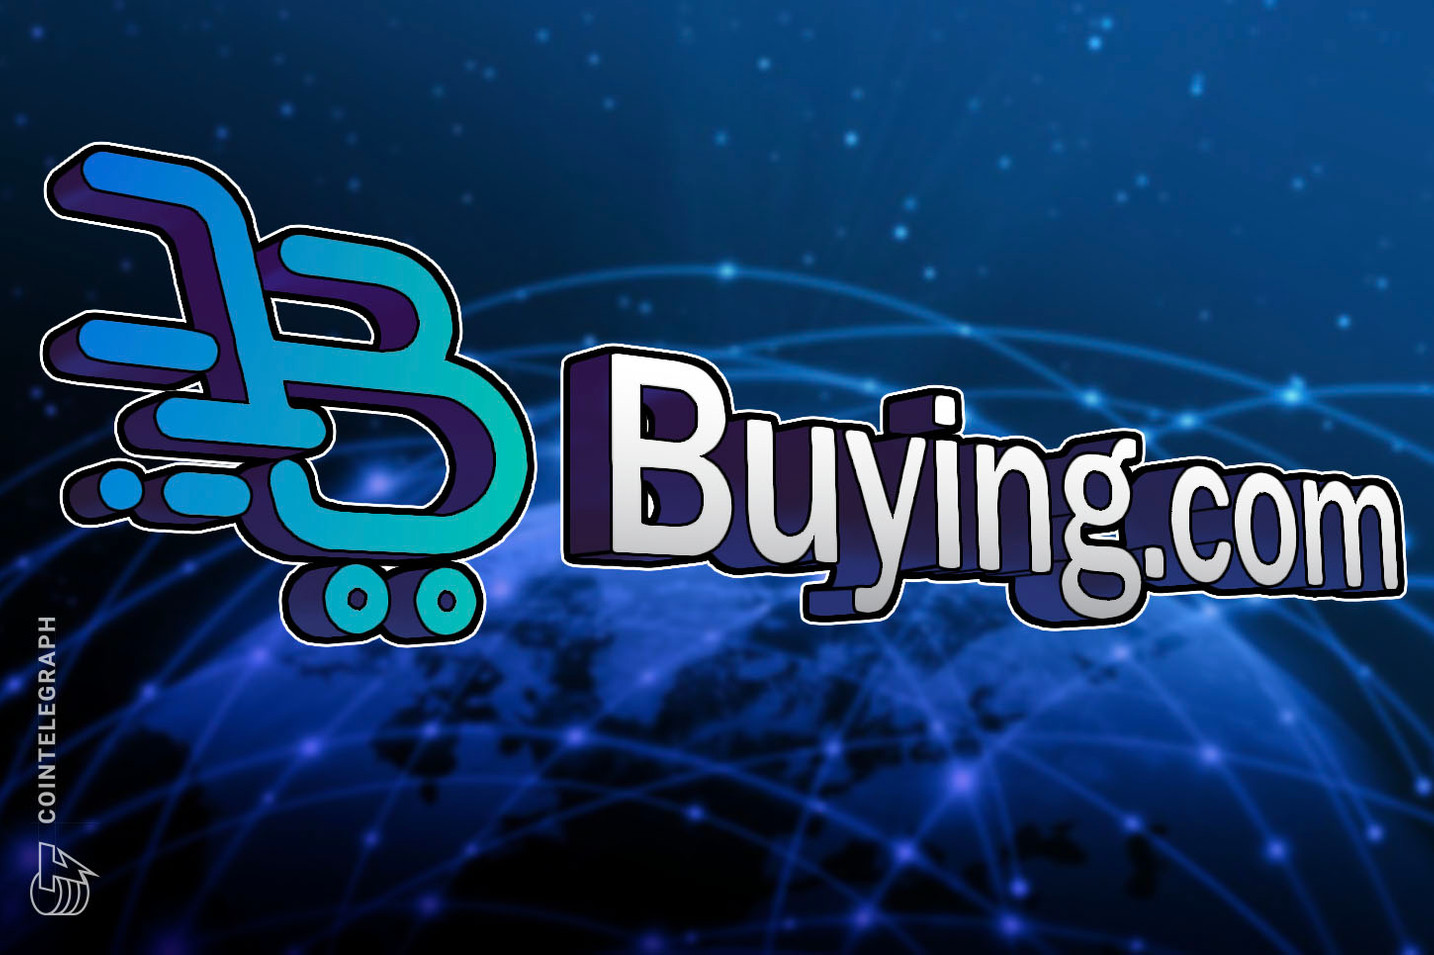 Buying.com Approved to Trade on OpenFinance; Launches Mobile App